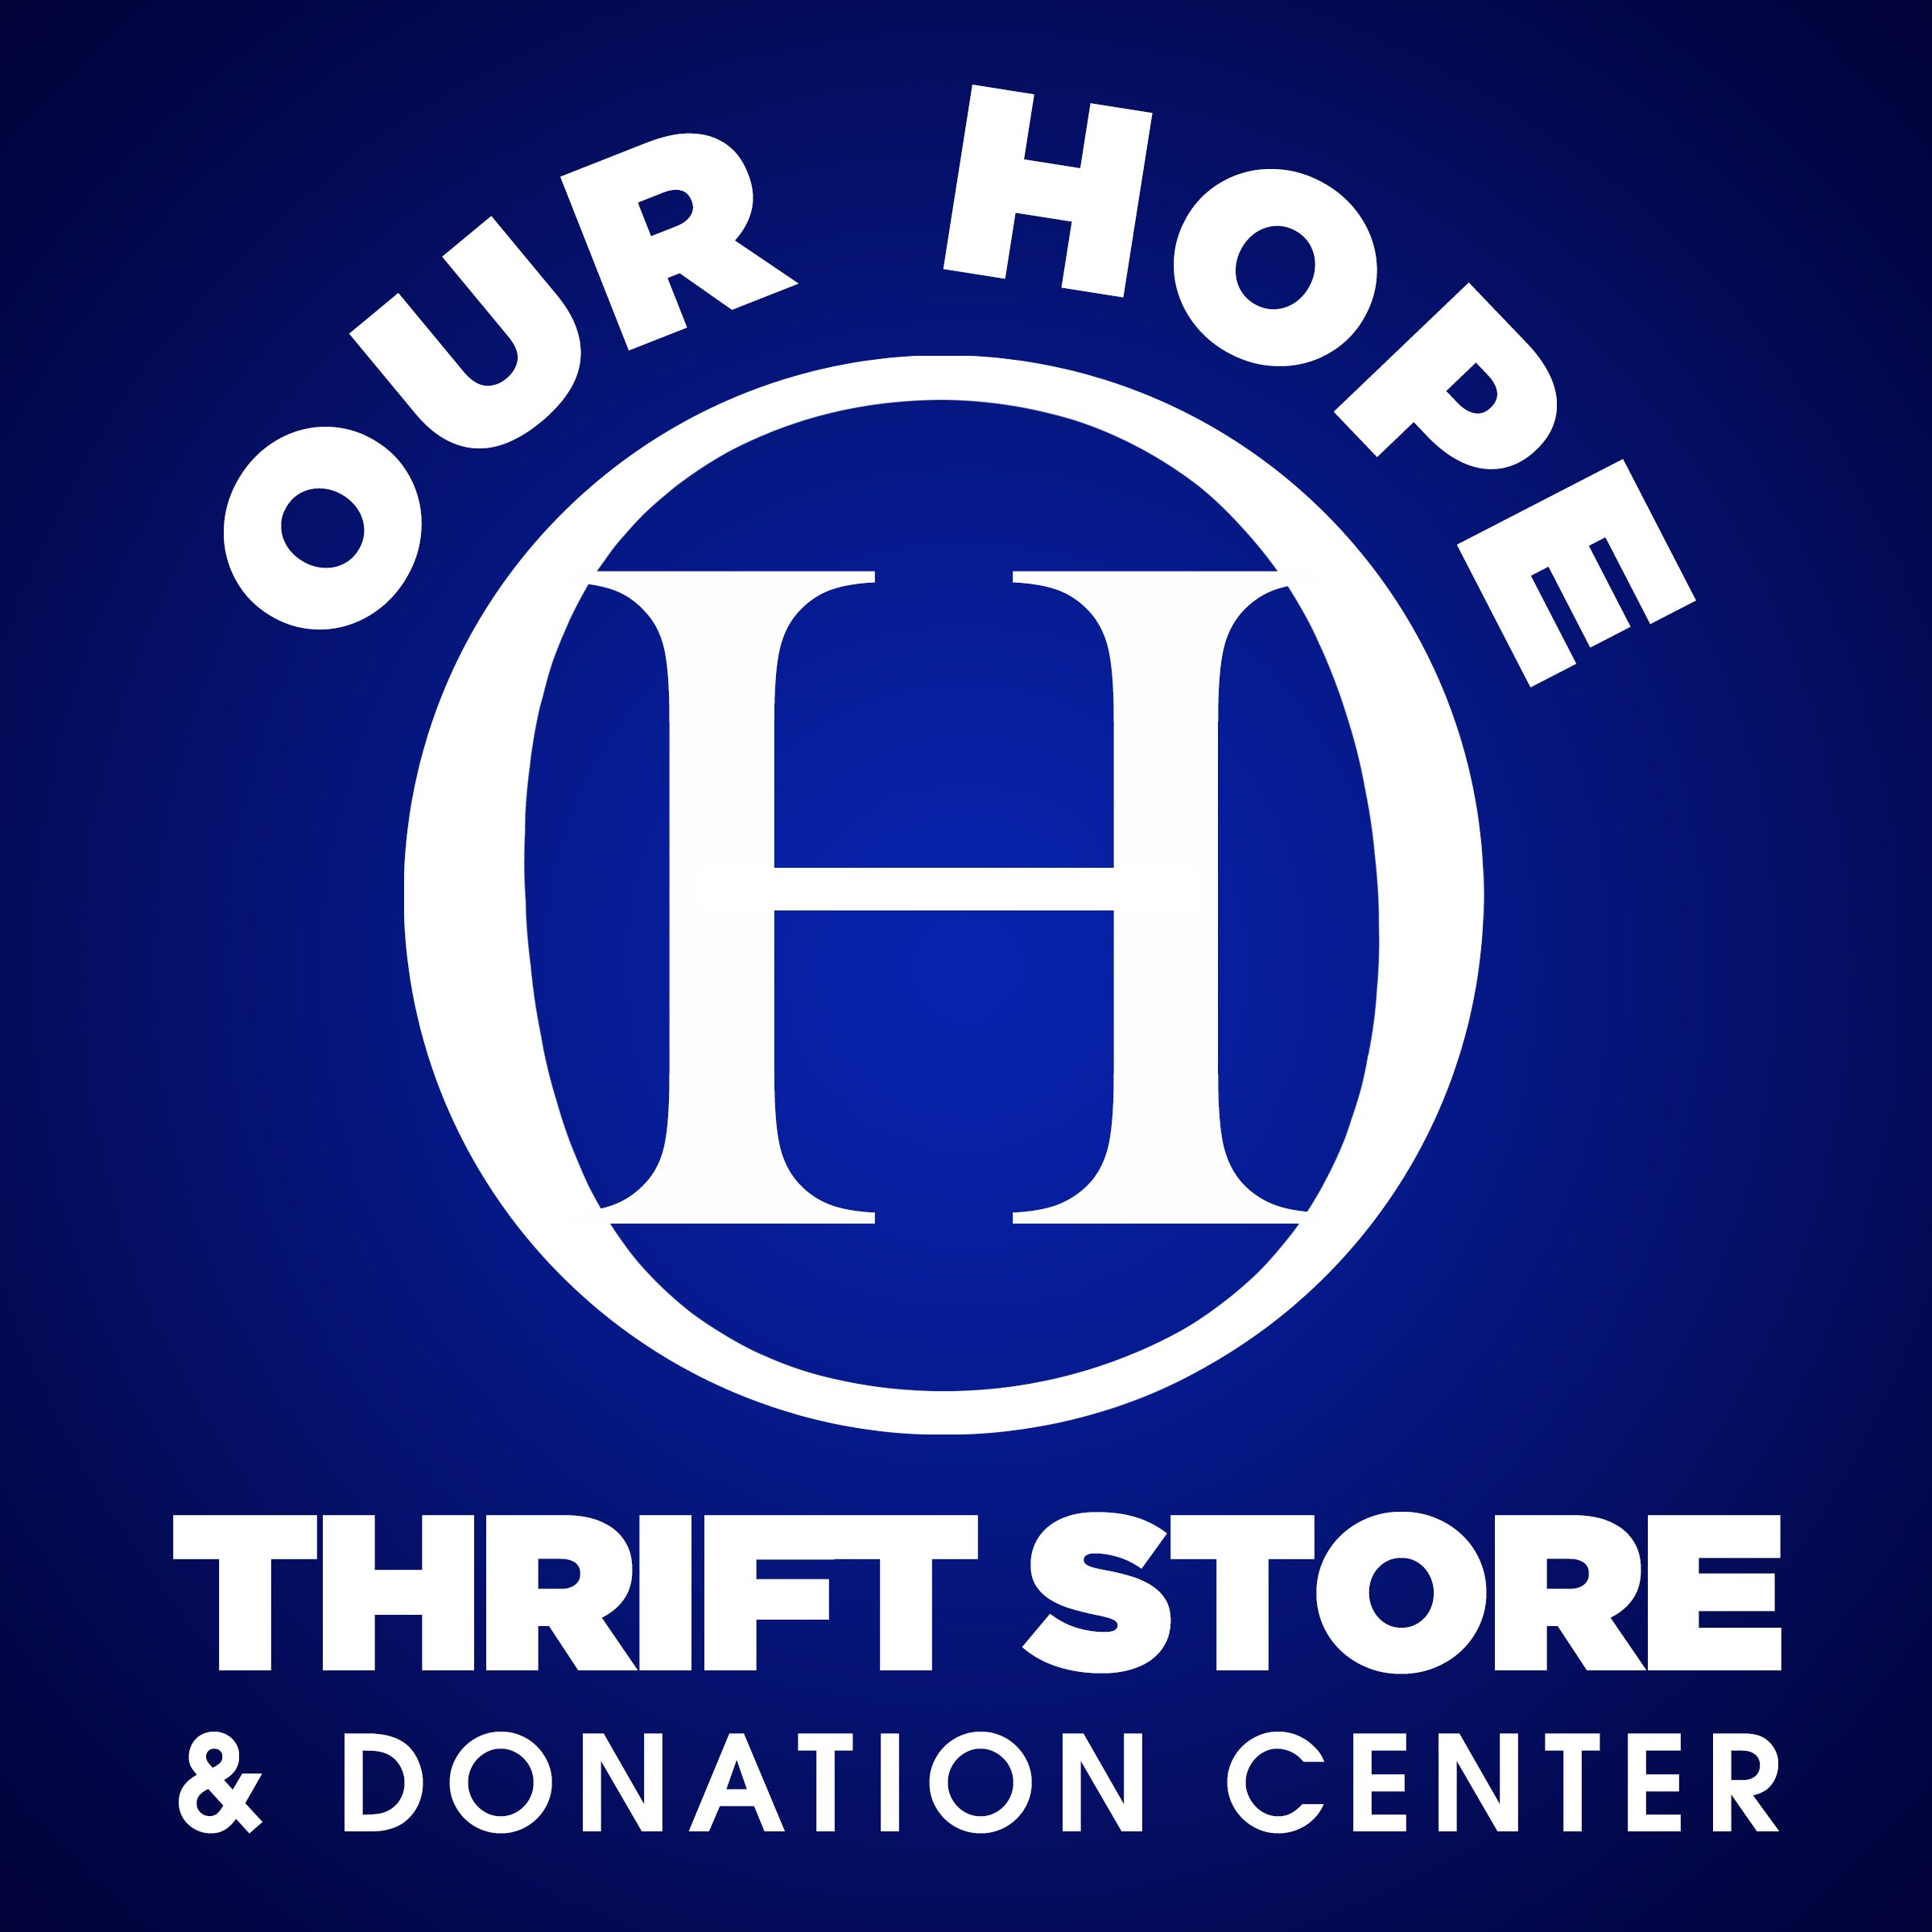 Our Hope Thrift Store